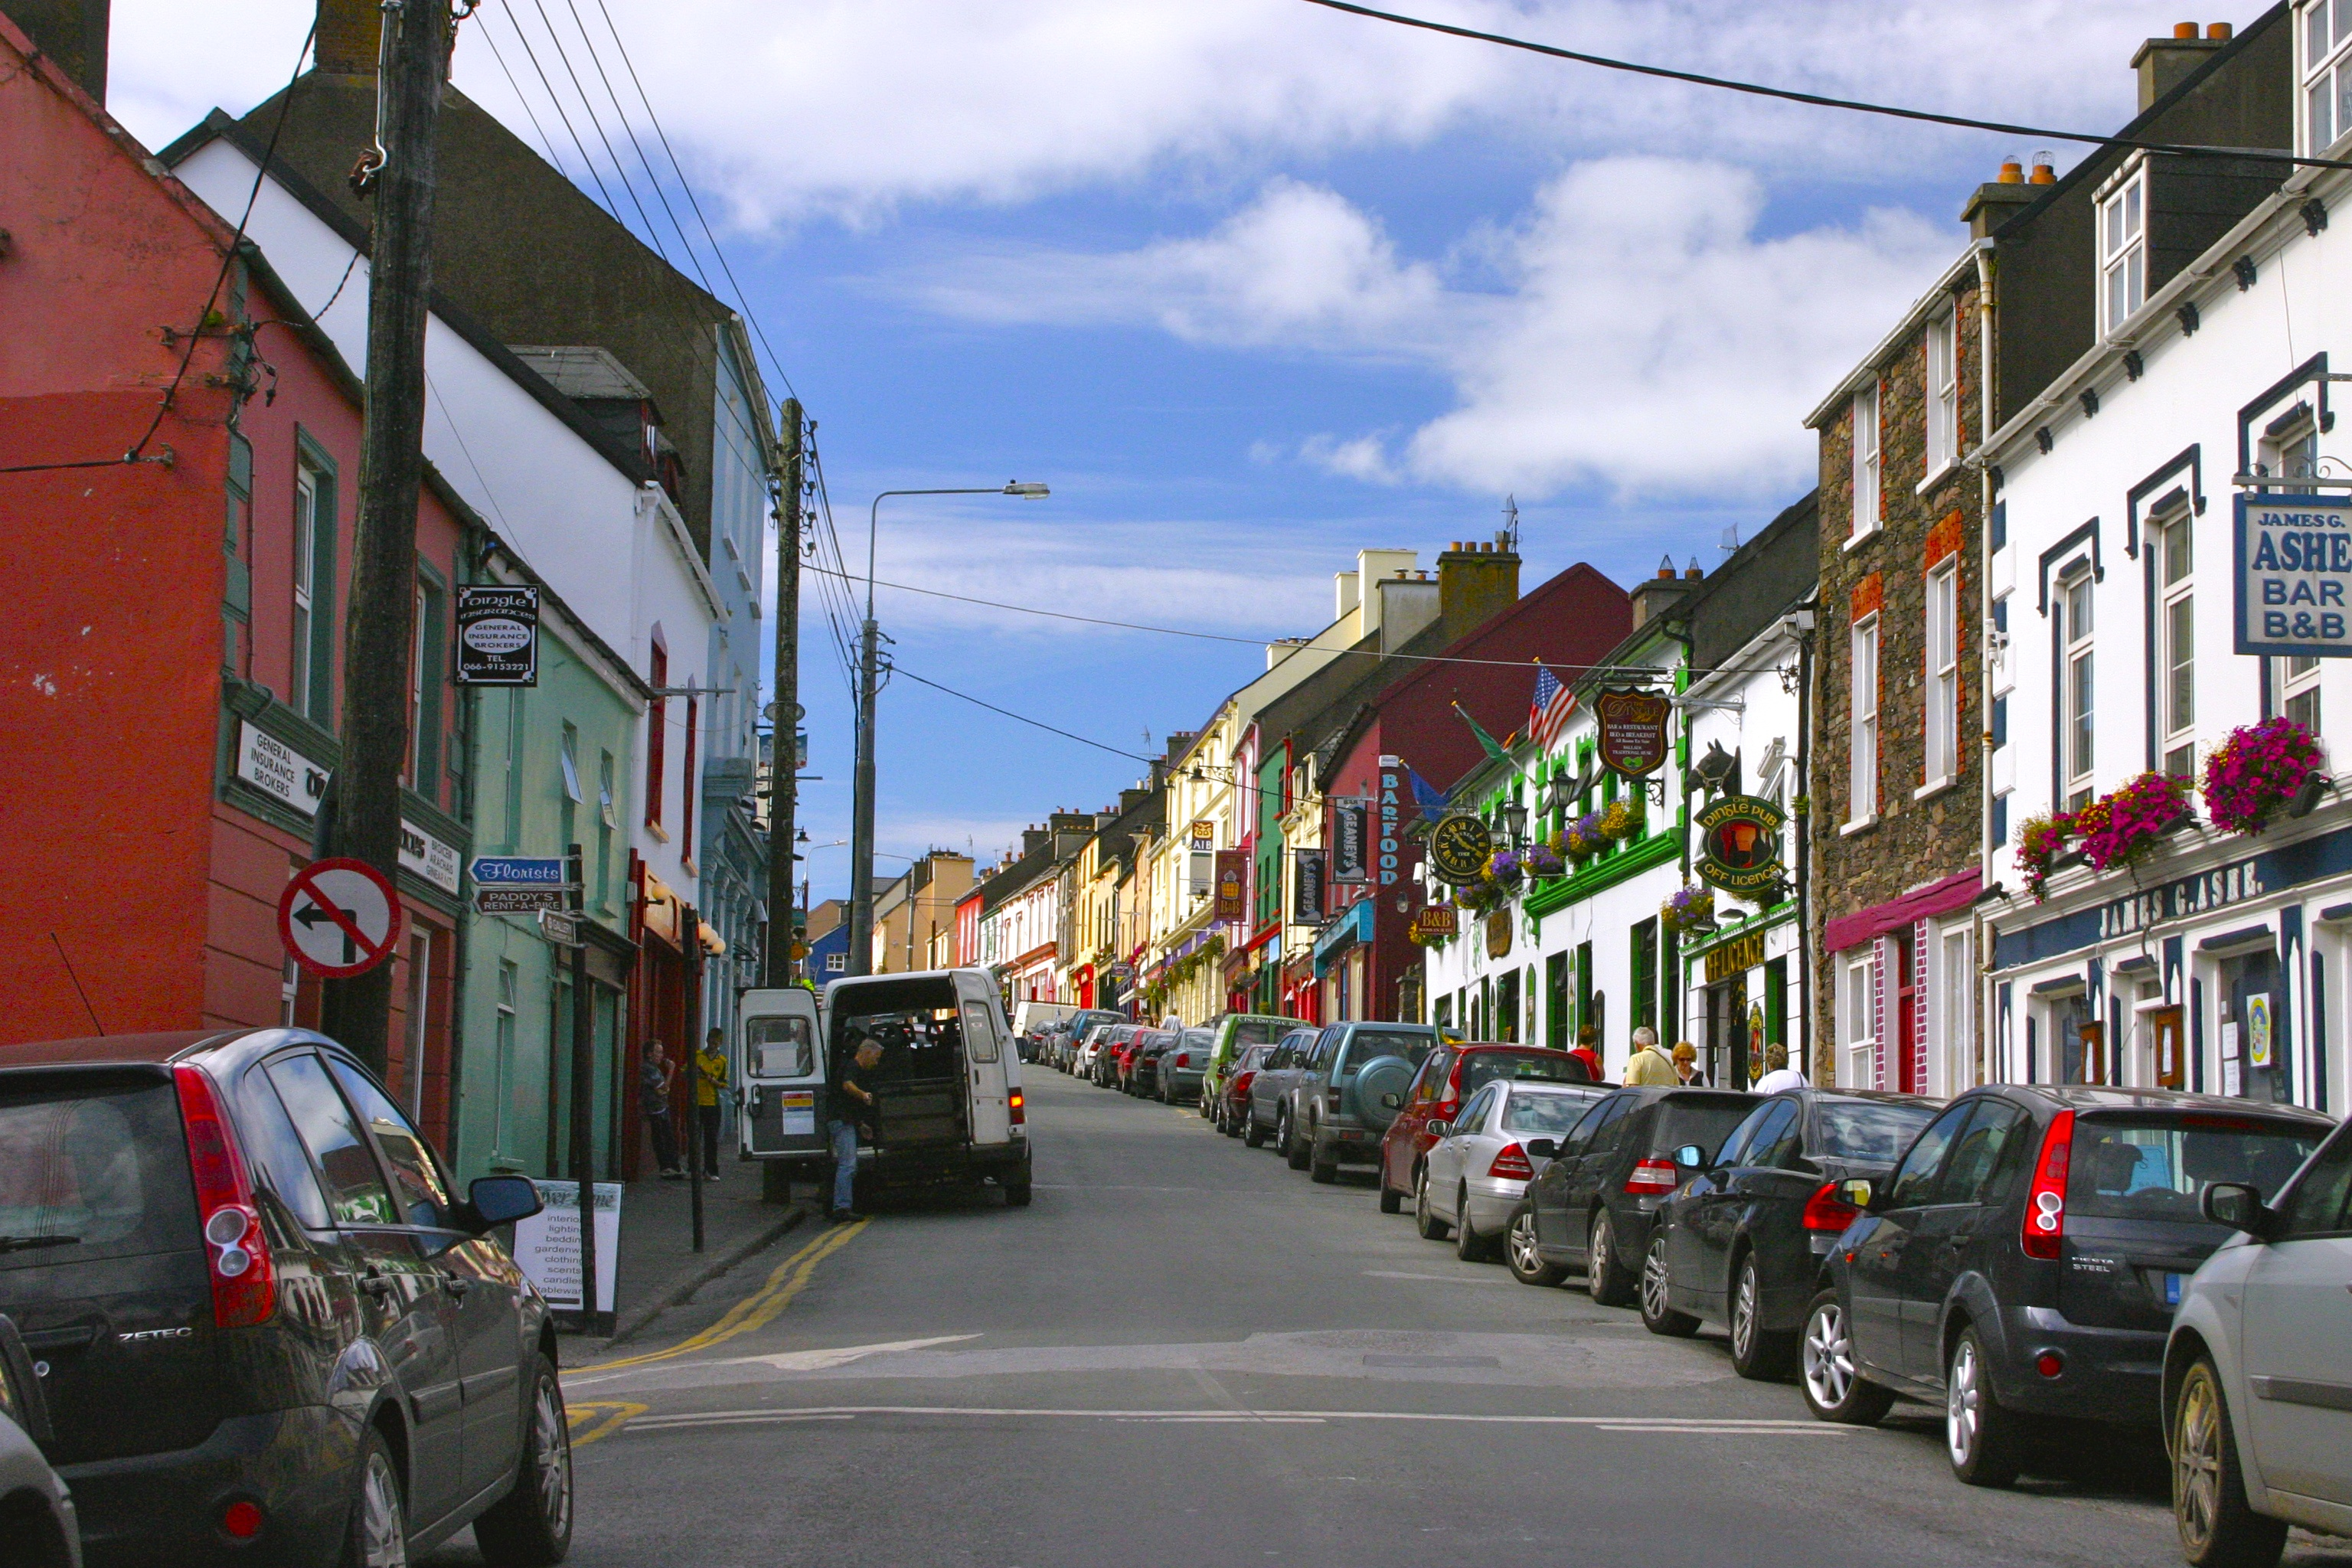 Town of Dingle, County Kerry, Ireland. Photo Credit: Tom Wilmer